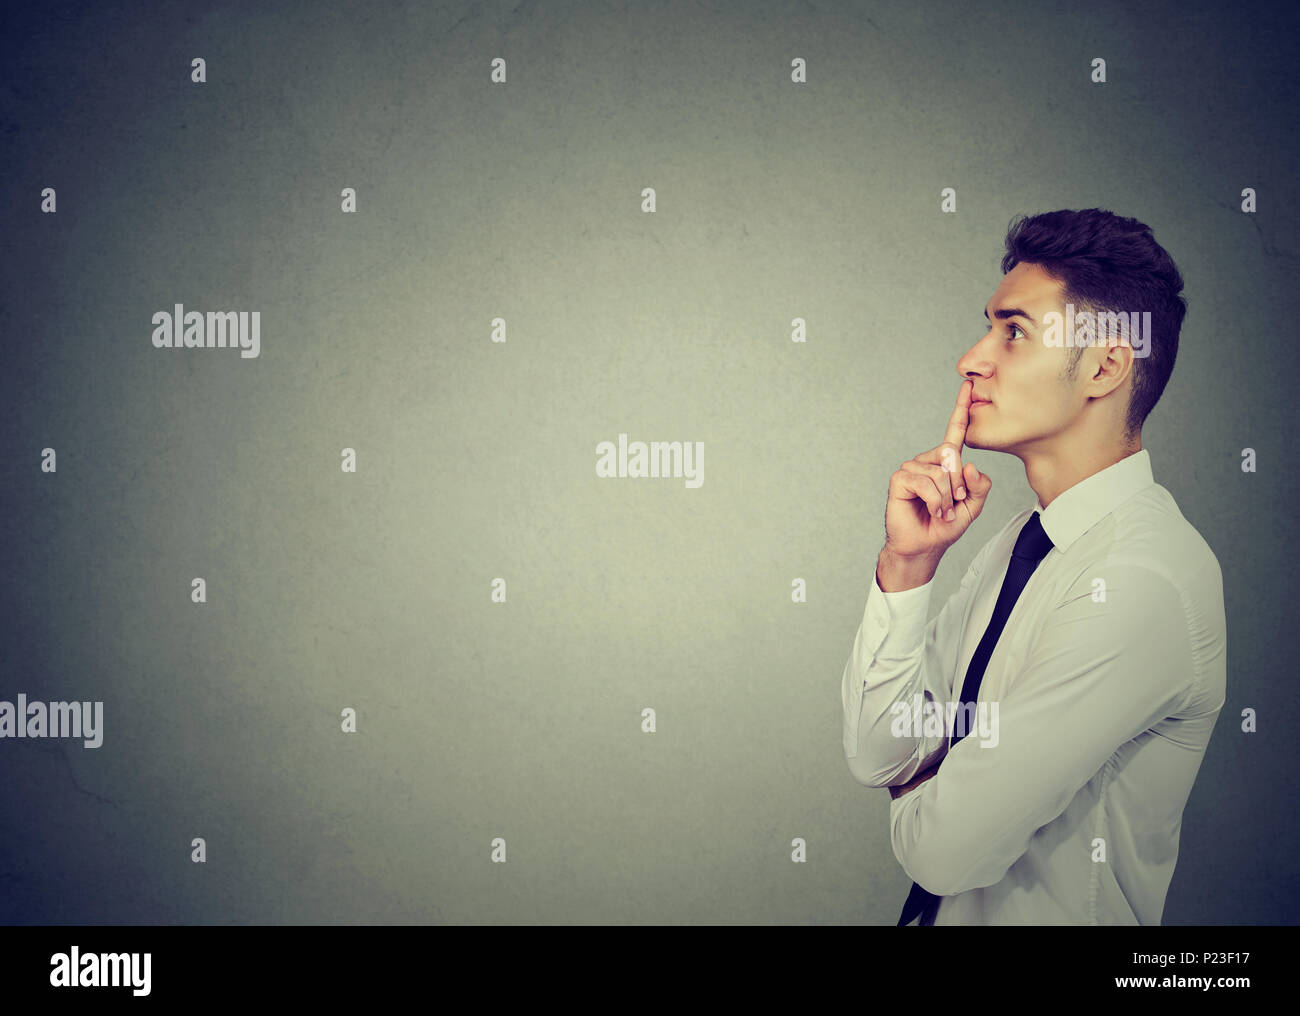 Thoughtful young business man making up his mind - Stock Image